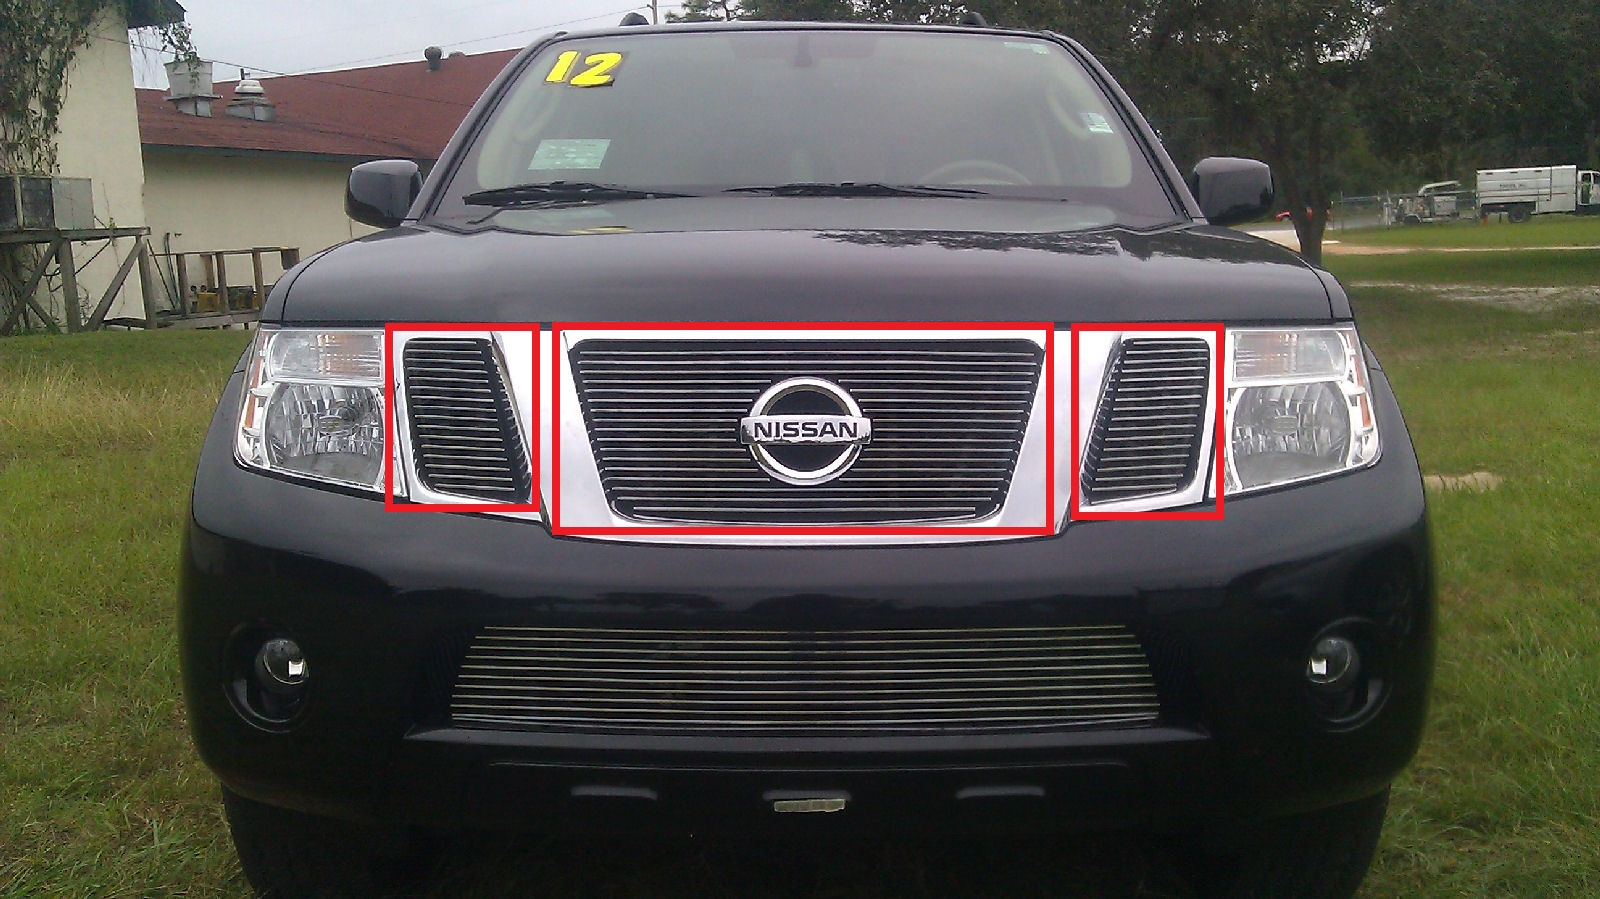 2008 nissan pathfinder 1pc bumper billet grille kit 2008 nissan pathfinder 3pc upper billet grille kit quick view vanachro Image collections